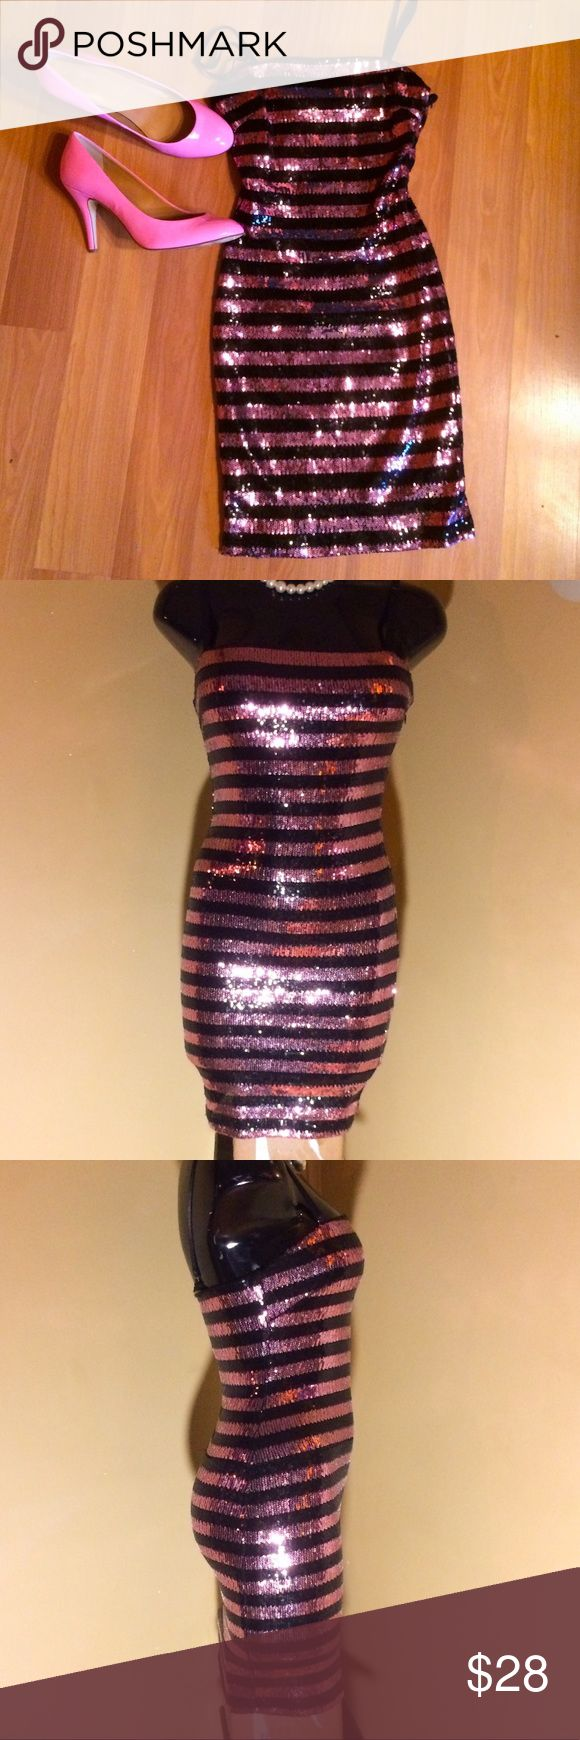 Selling this Black and pink striped sequin dress on Poshmark! My username is: tamarc6. #shopmycloset #poshmark #fashion #shopping #style #forsale #XXI #Dresses & Skirts